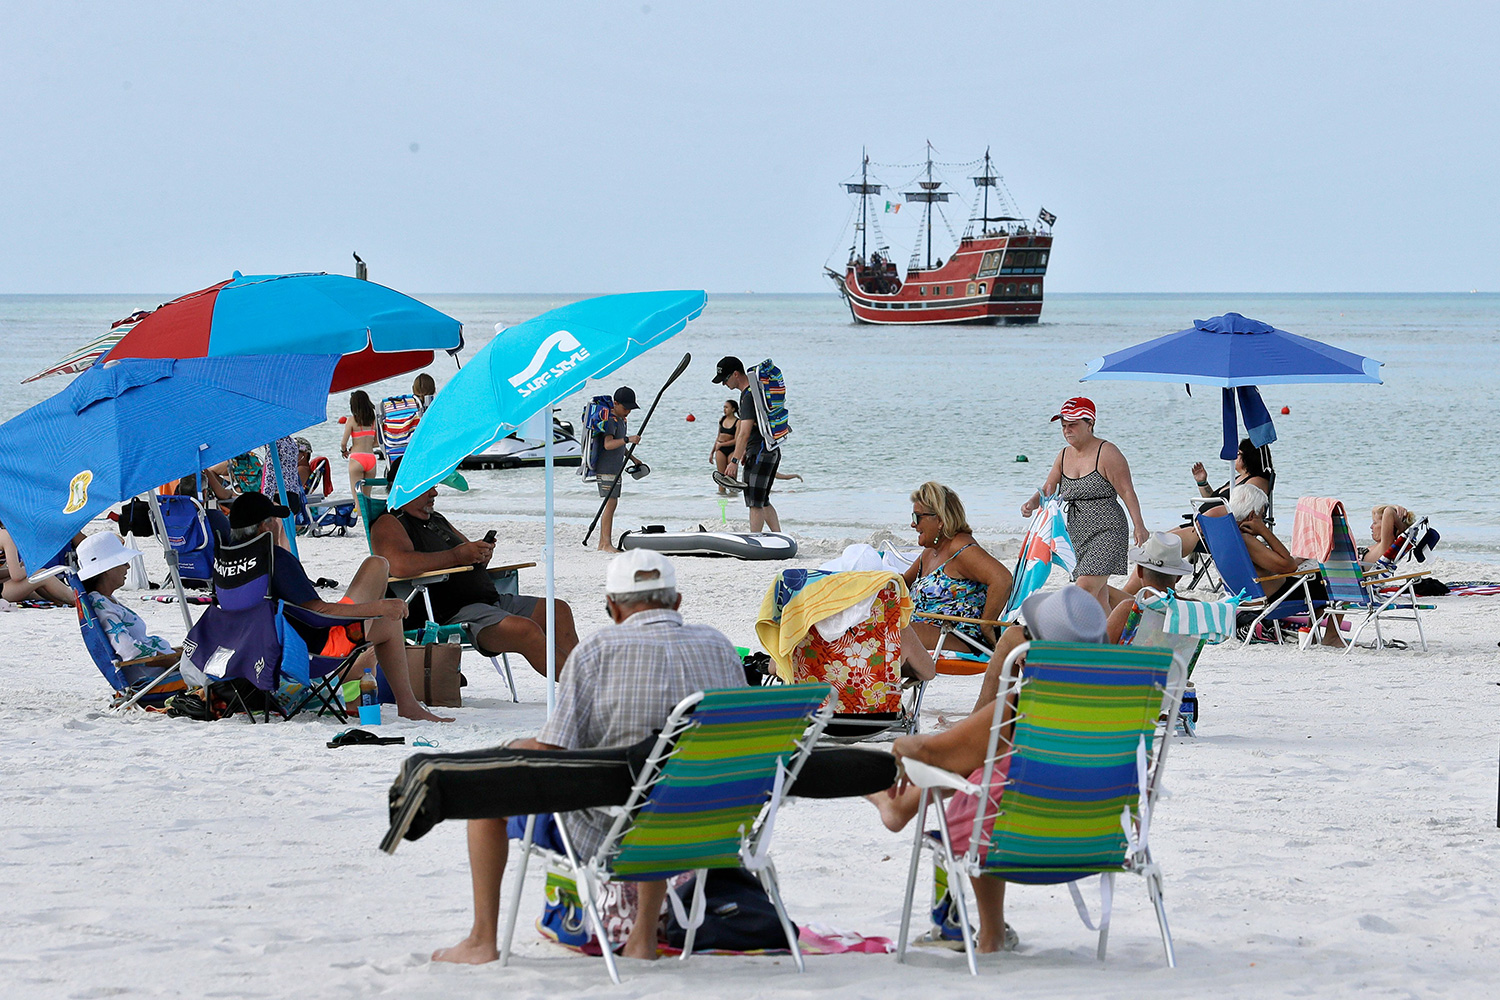 Visitors sit on the North Beach, in Clearwater Beach, Fla. Beach goers are keeping a safe distance to avoid the spread of the coronavirus as they enjoy the Florida weather Virus Outbreak Florida Beaches, Clearwater Beach, United States - 17 Mar 2020